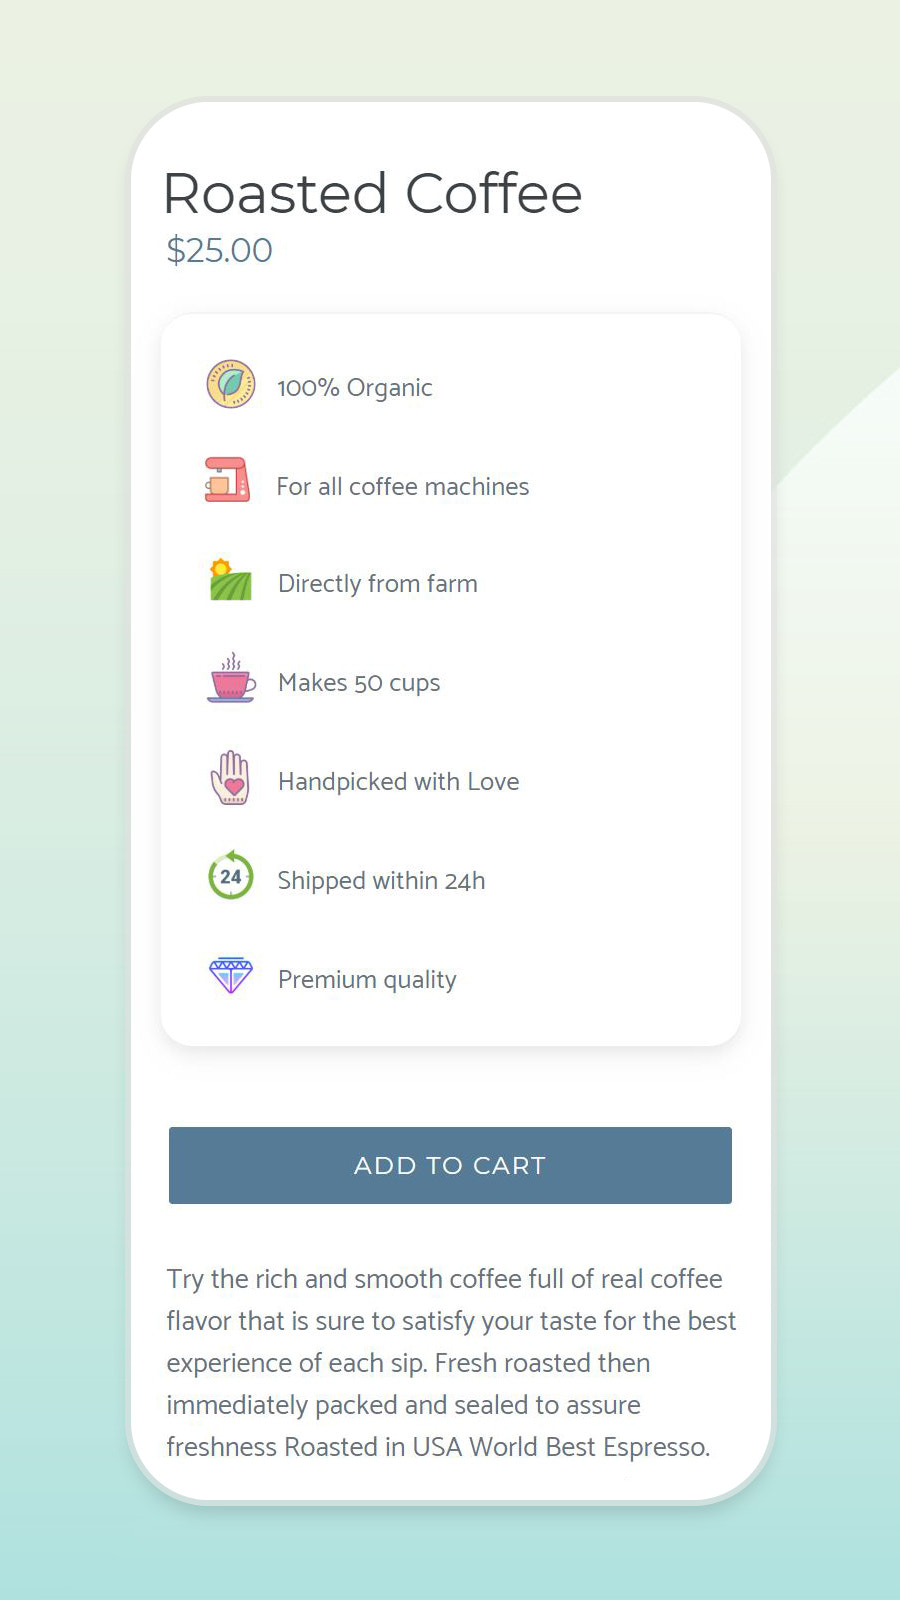 Amazing Product Descriptions on Mobile Devices